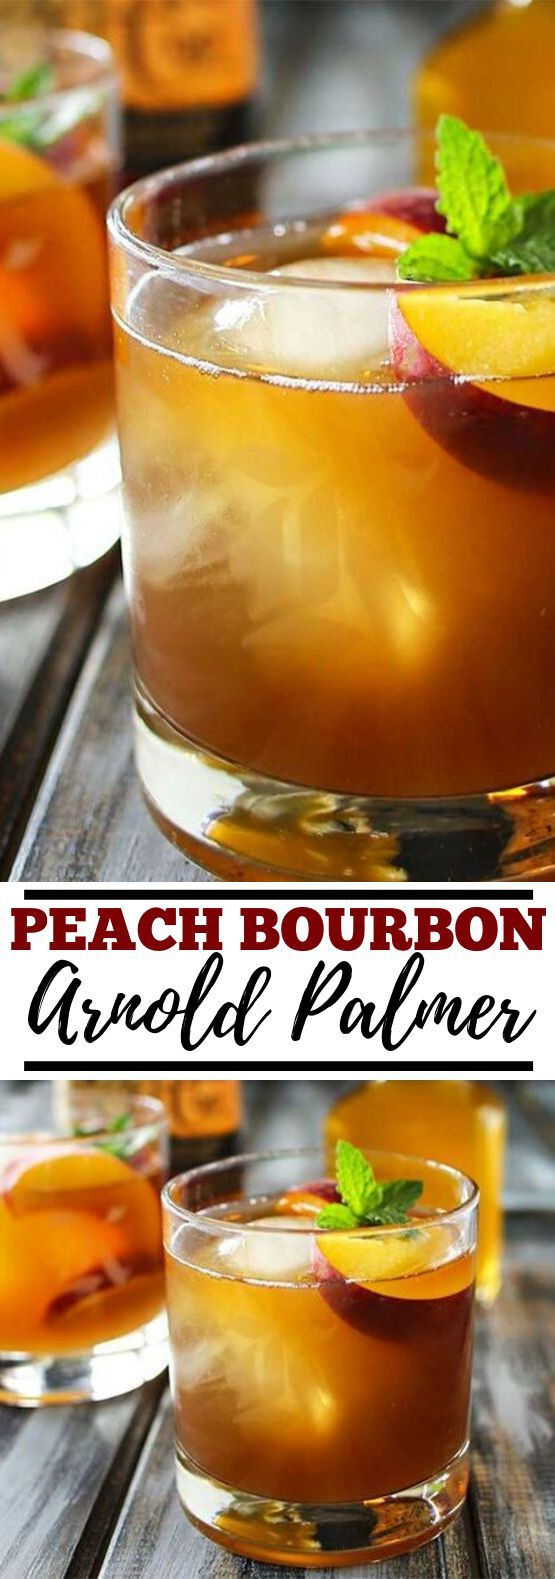 Peach Bourbon Arnold Palmer #drinks #alcohol #boissonsfraîches